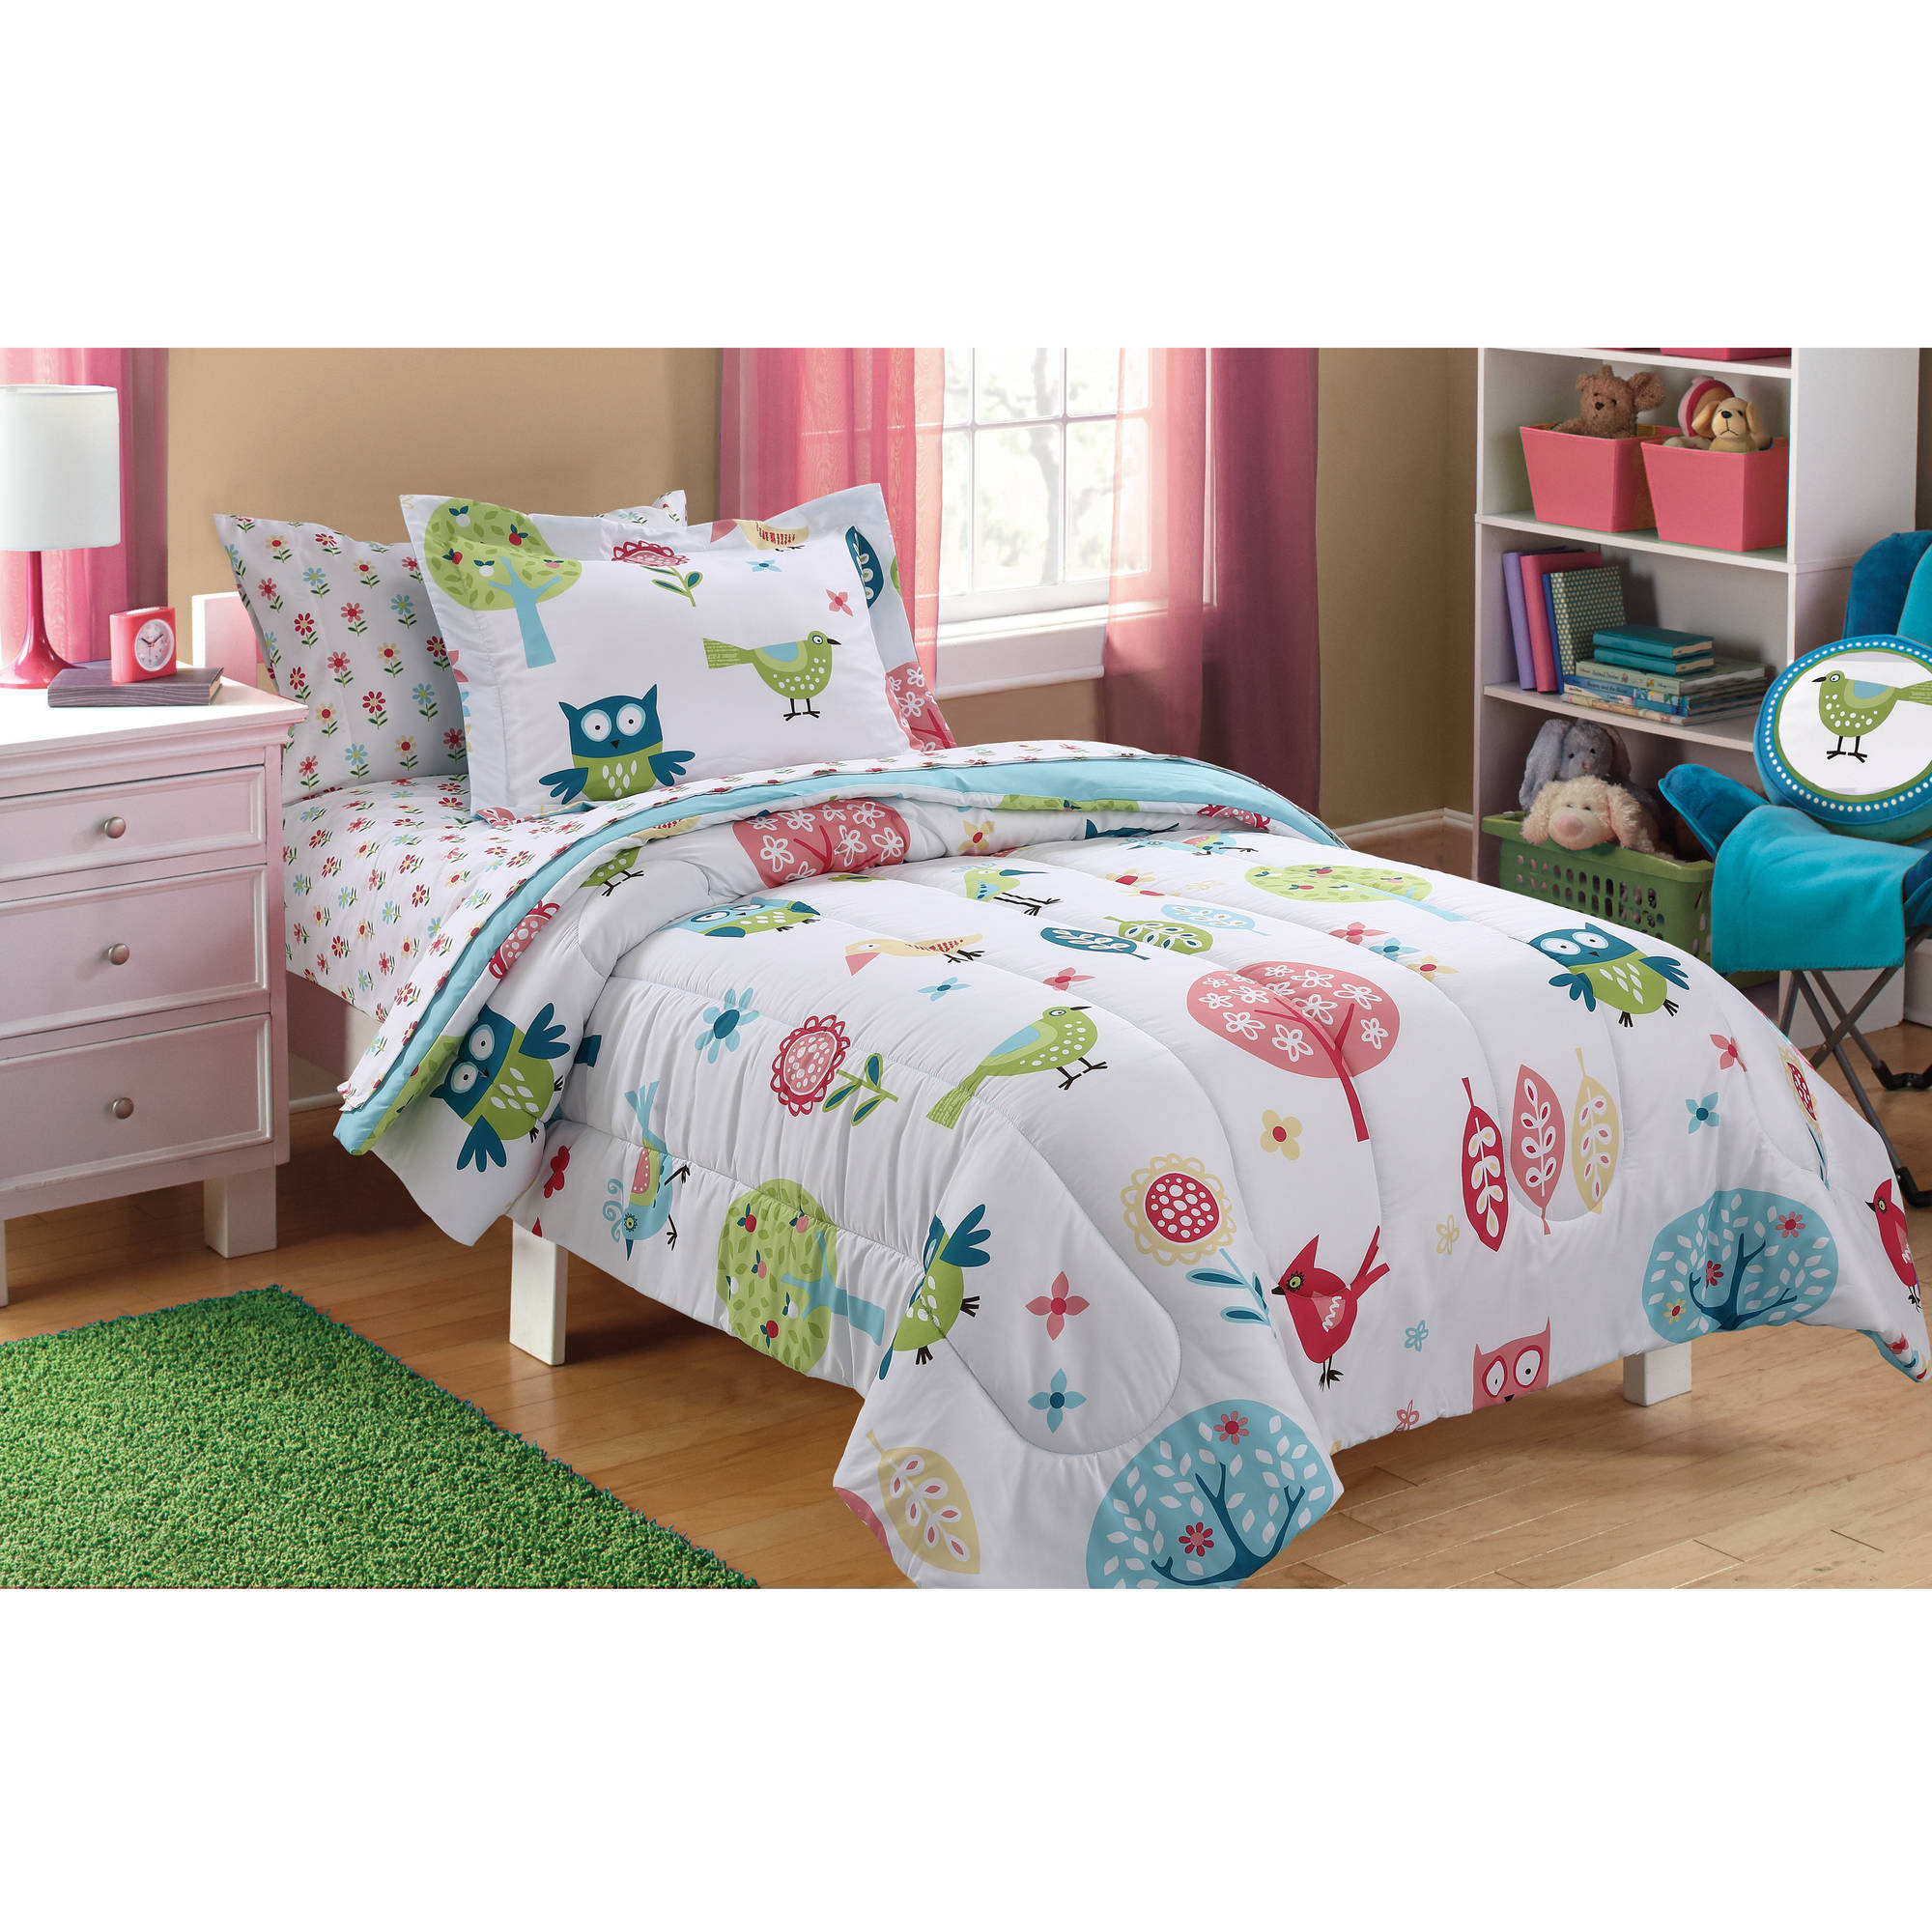 Mainstays Kids Woodland Bed in a Bag Bedding Set